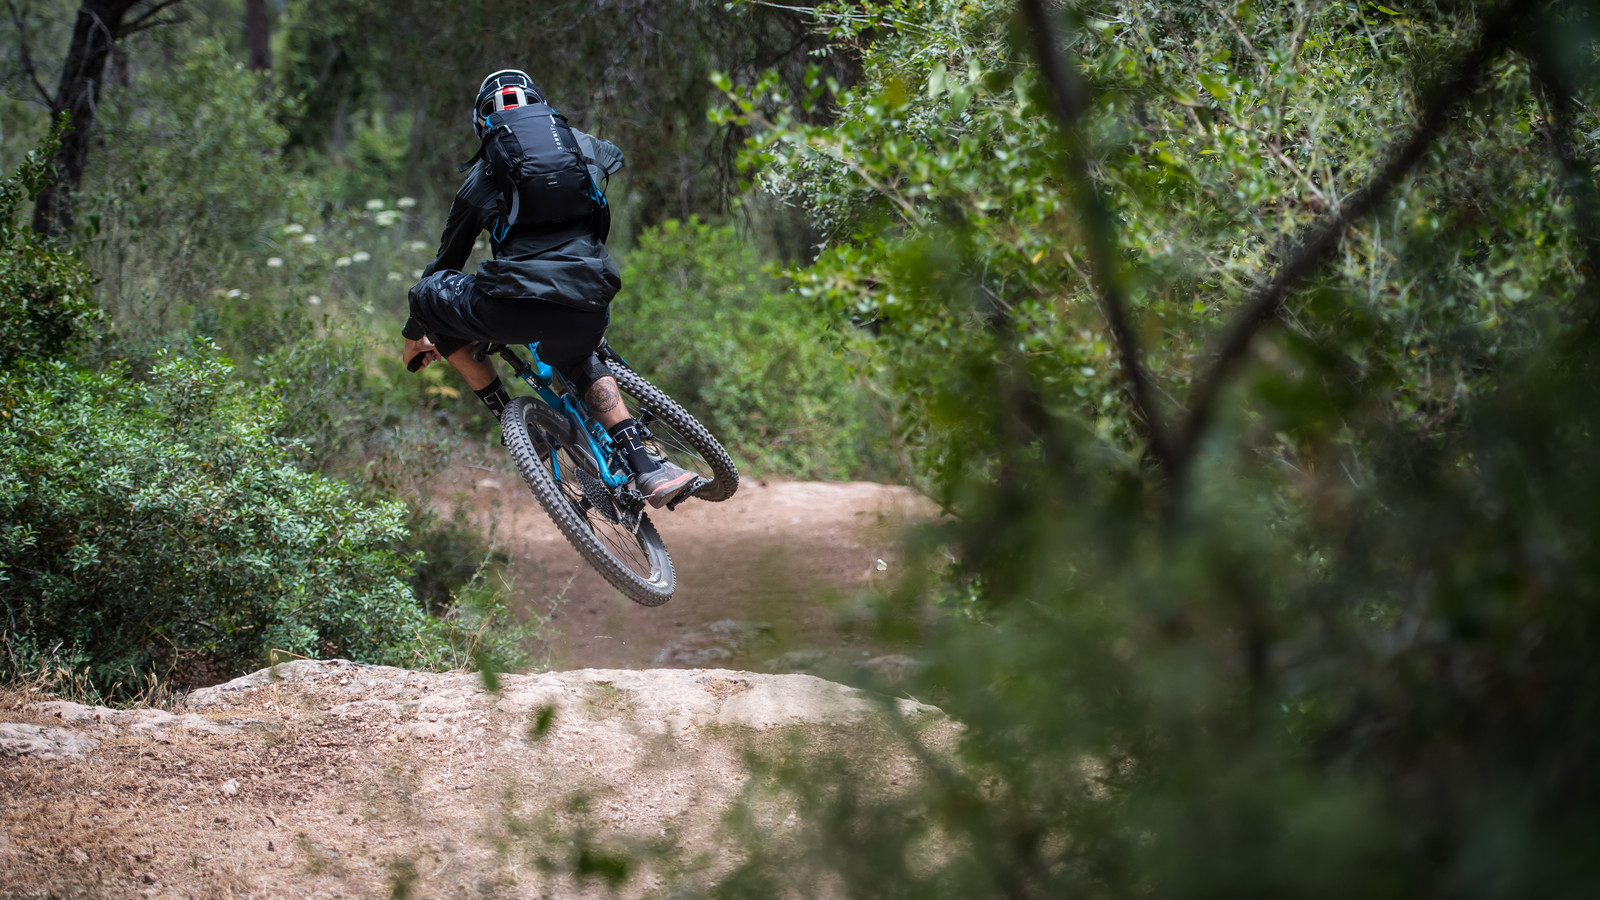 The New SOURCE Summit: a High Quality Hydration Backpack, Tailor-made for Mountain Bikers